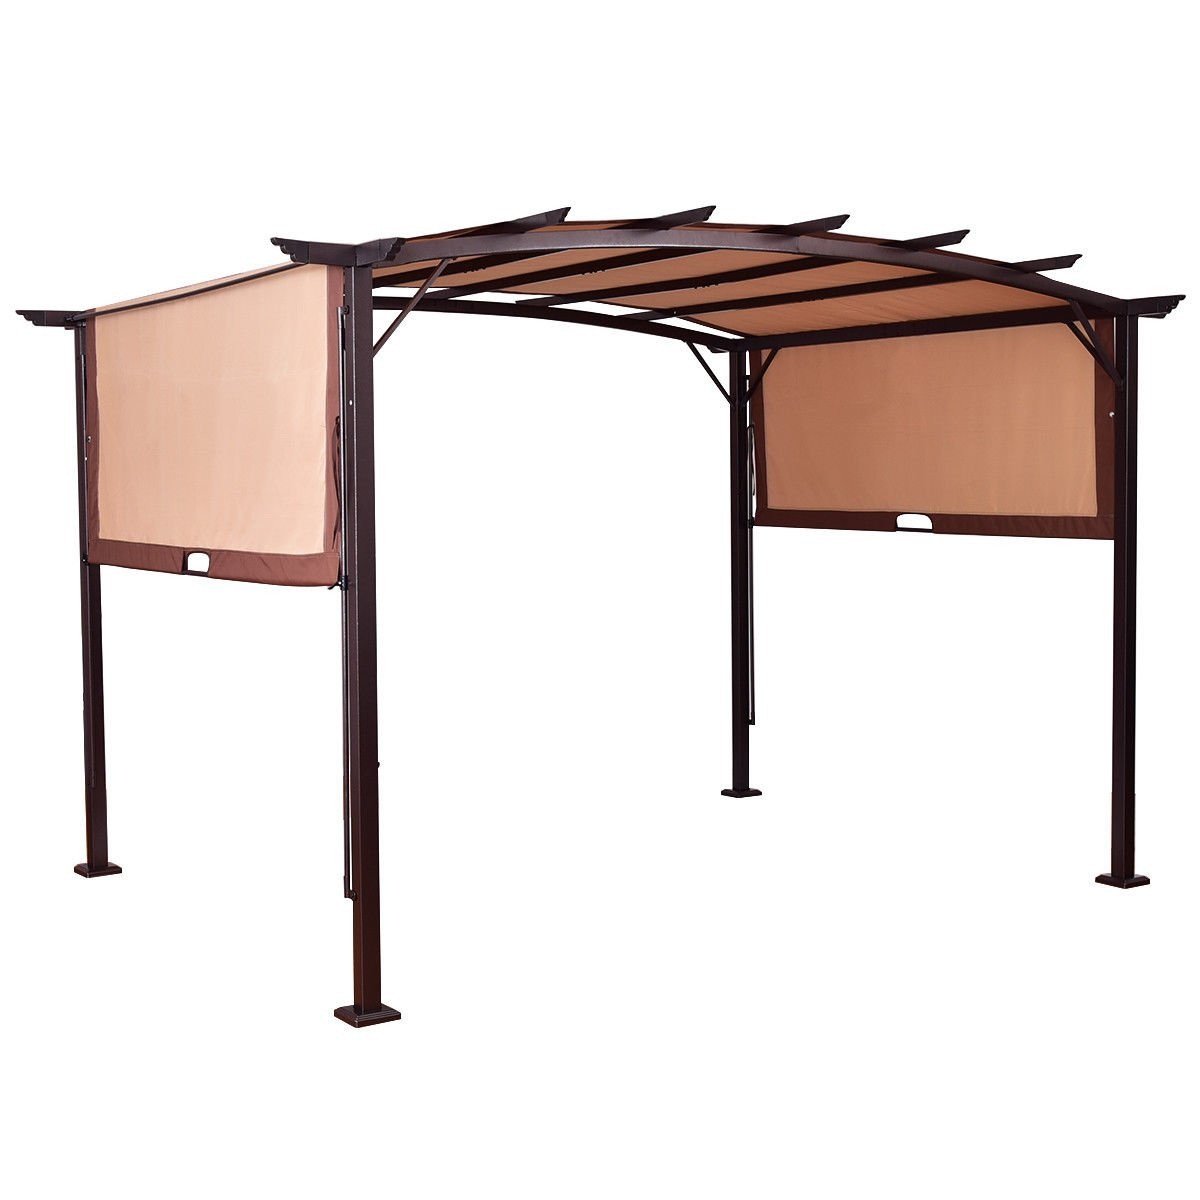 Tangkula 12' x 9' Pergola Gazebo Outdoor Patio Garden Steel Frame Sun Shelter with Retractable Canopy Shades